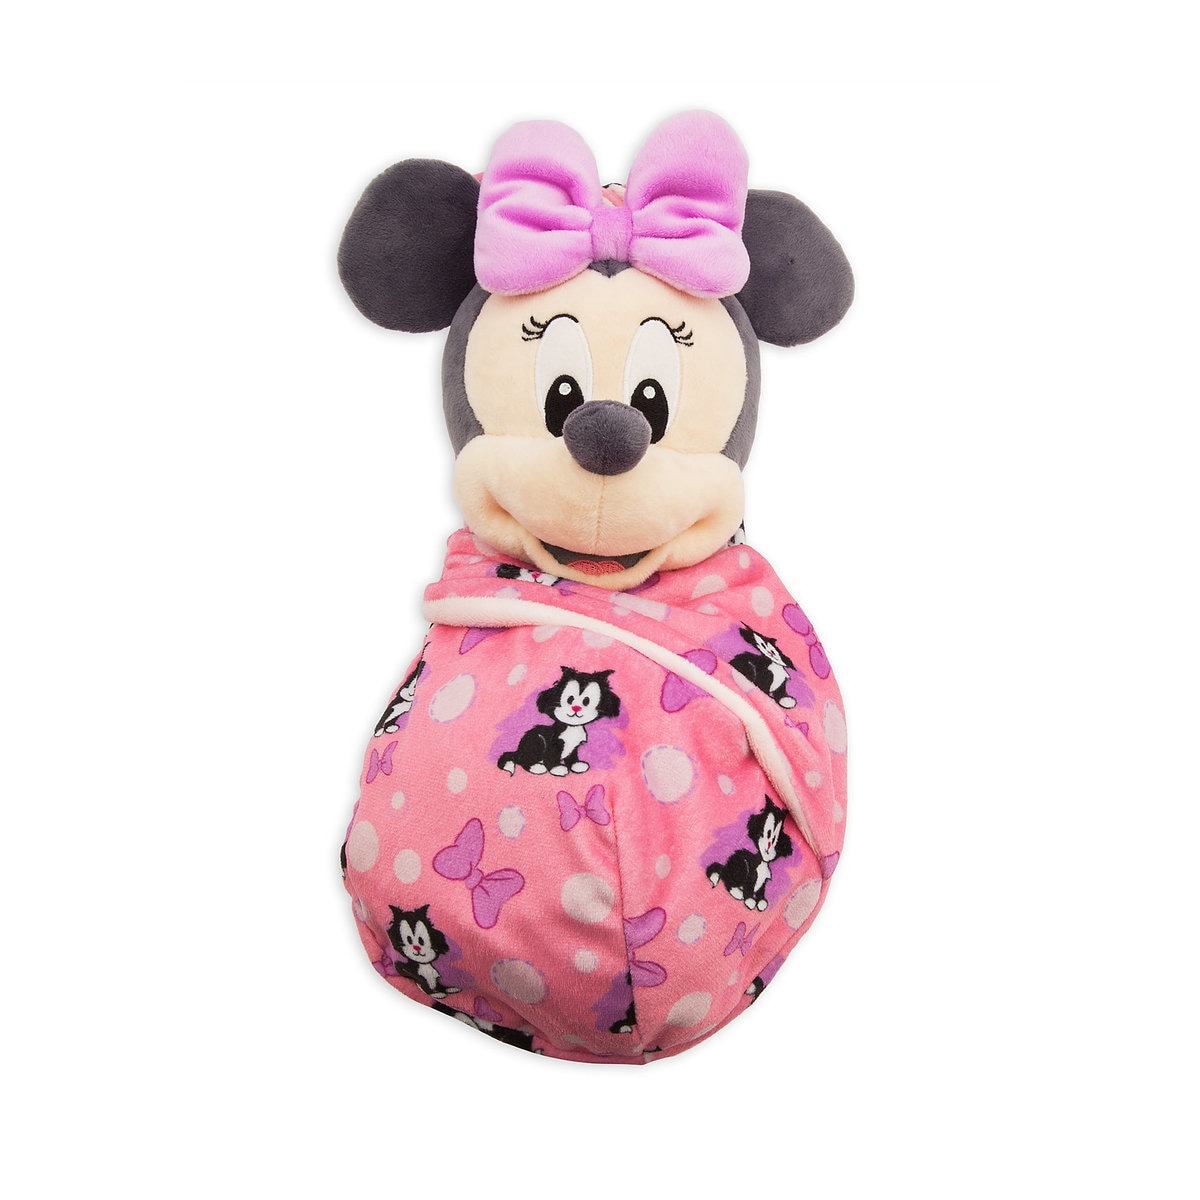 35adb298c07ca Product Image of Minnie Mouse Plush in Pouch - Disney Babies - Small   1